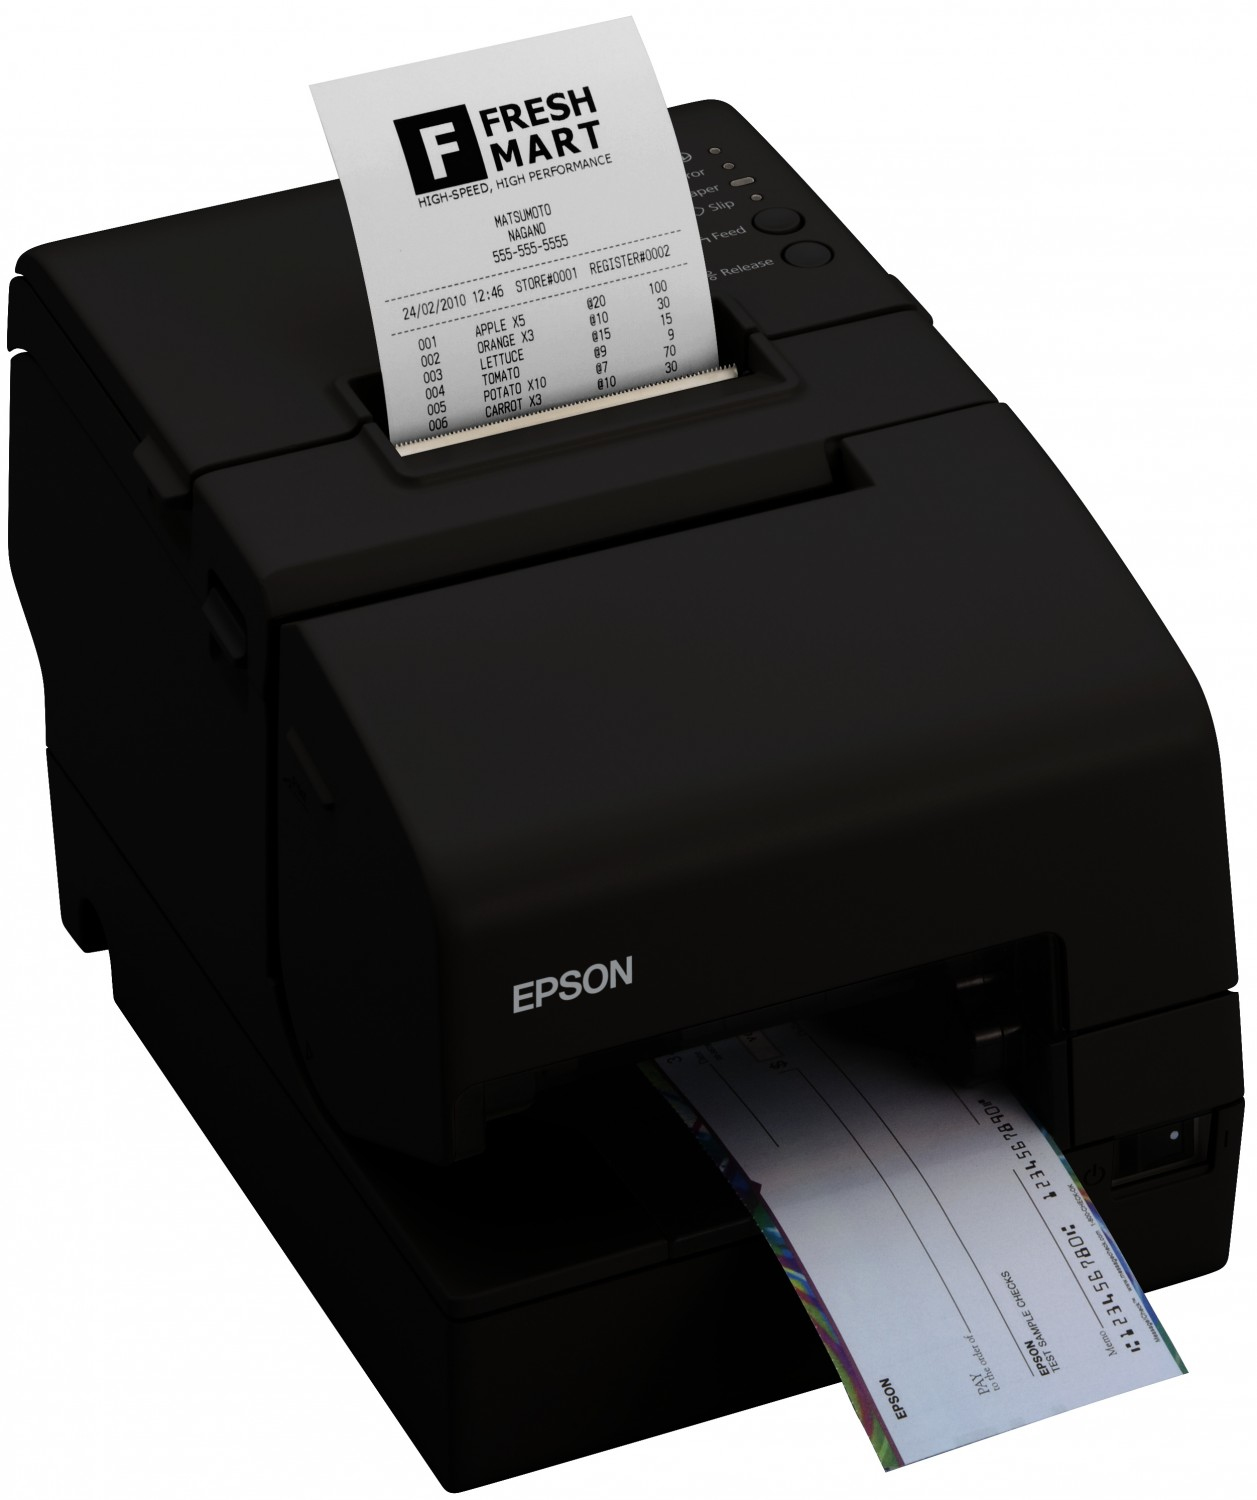 Epson TM-H6000IV Series Thermodruck POS printer 180 x 180DPI